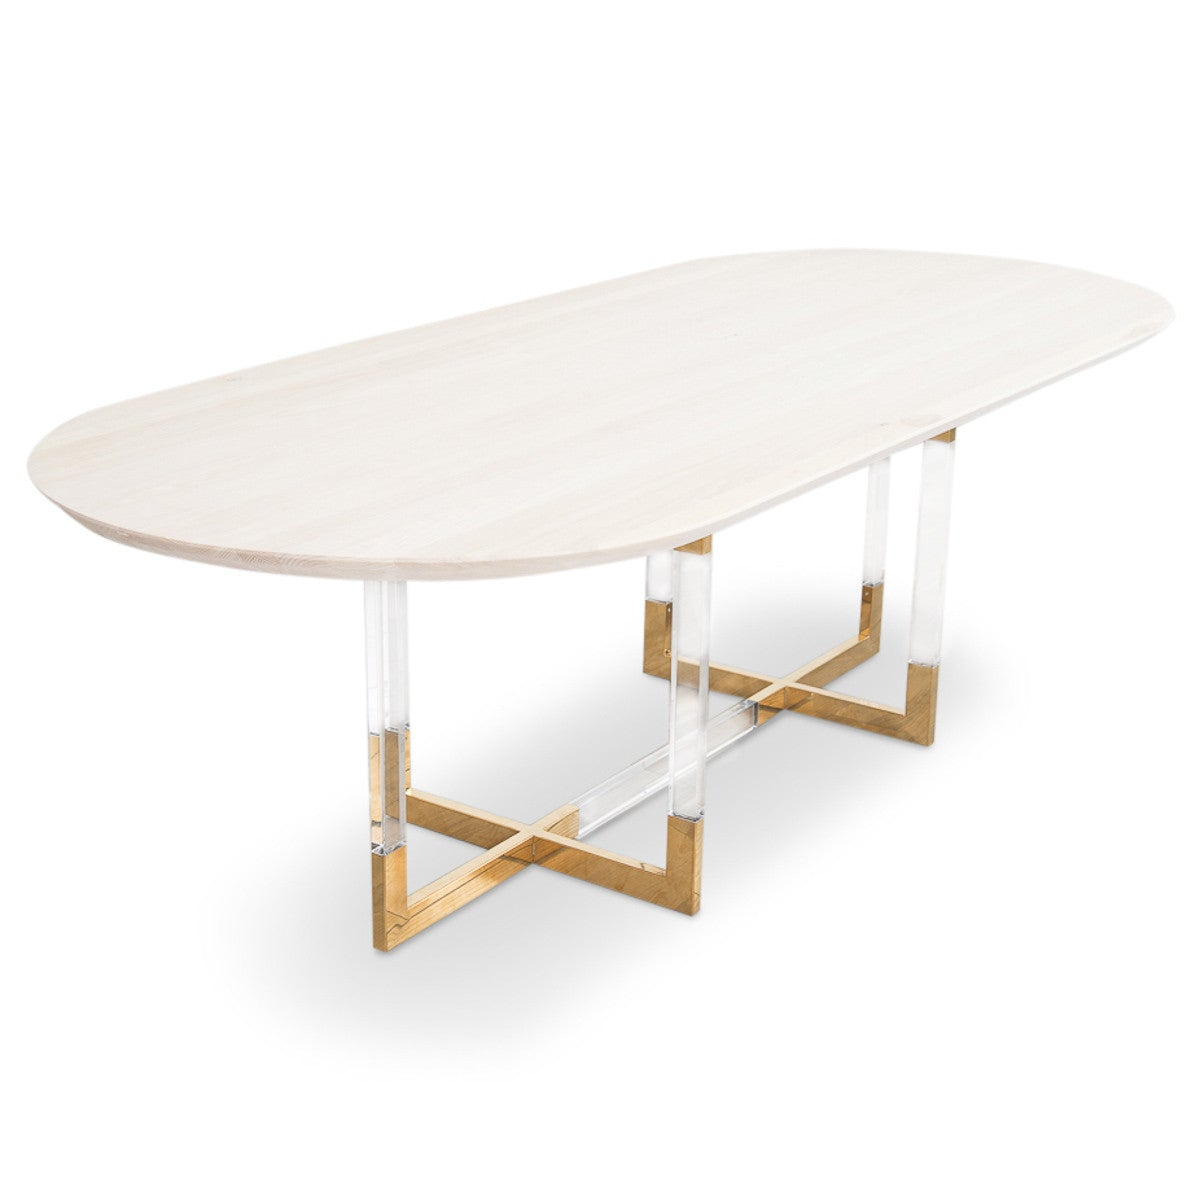 Trousdale 2 Oval Dining Table in Bleached Solid Hickory - ModShop1.com